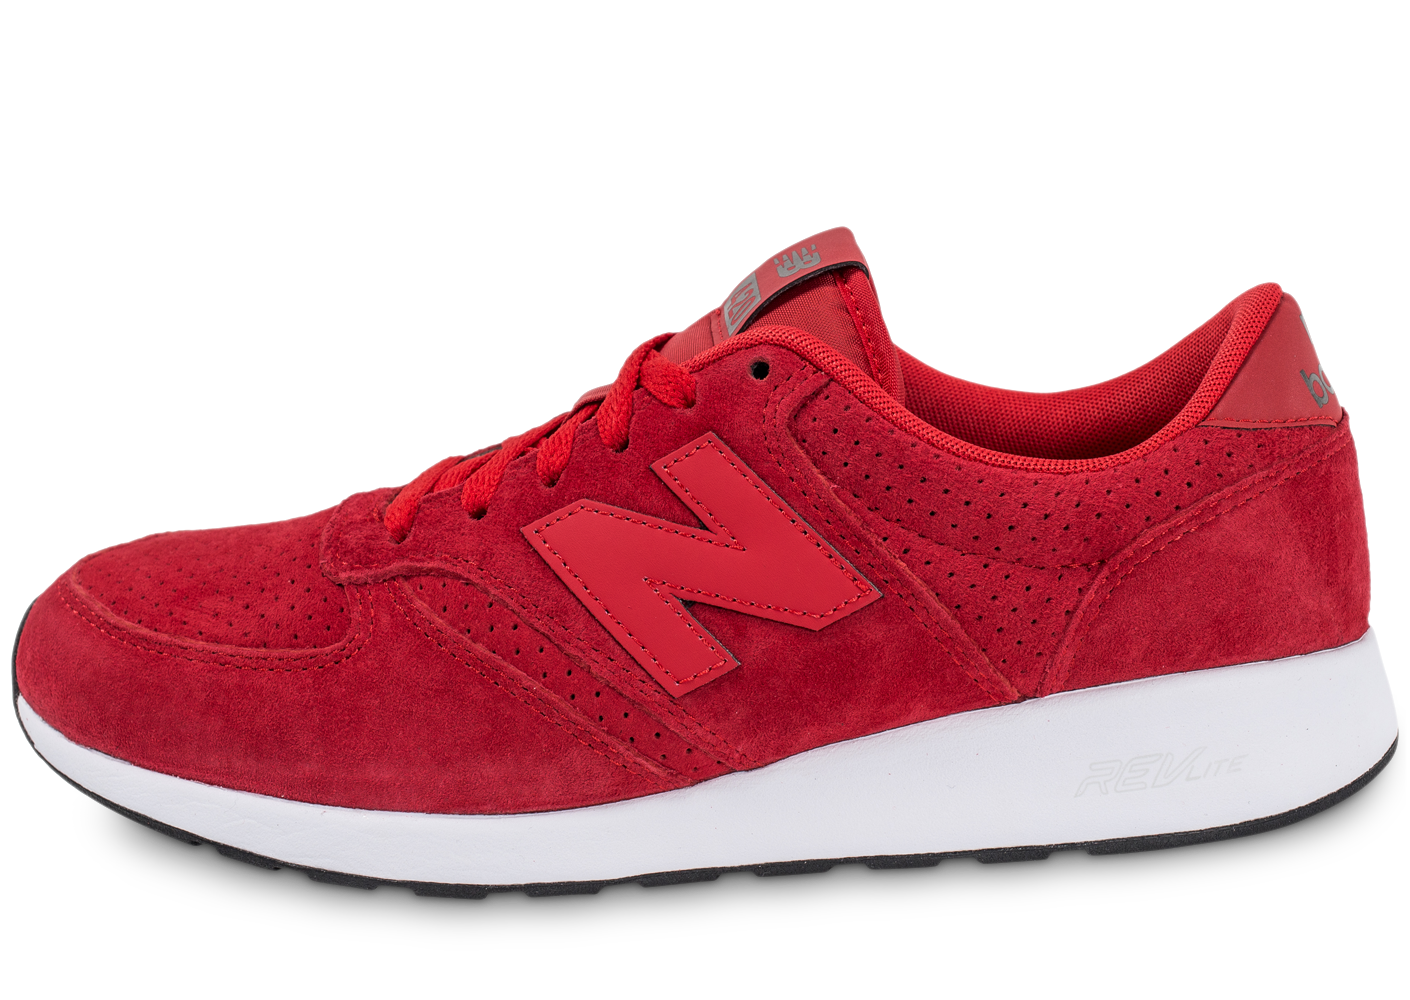 New Balance Mrl420si Re-engineered Suede Rouge Baskets/Running Homme